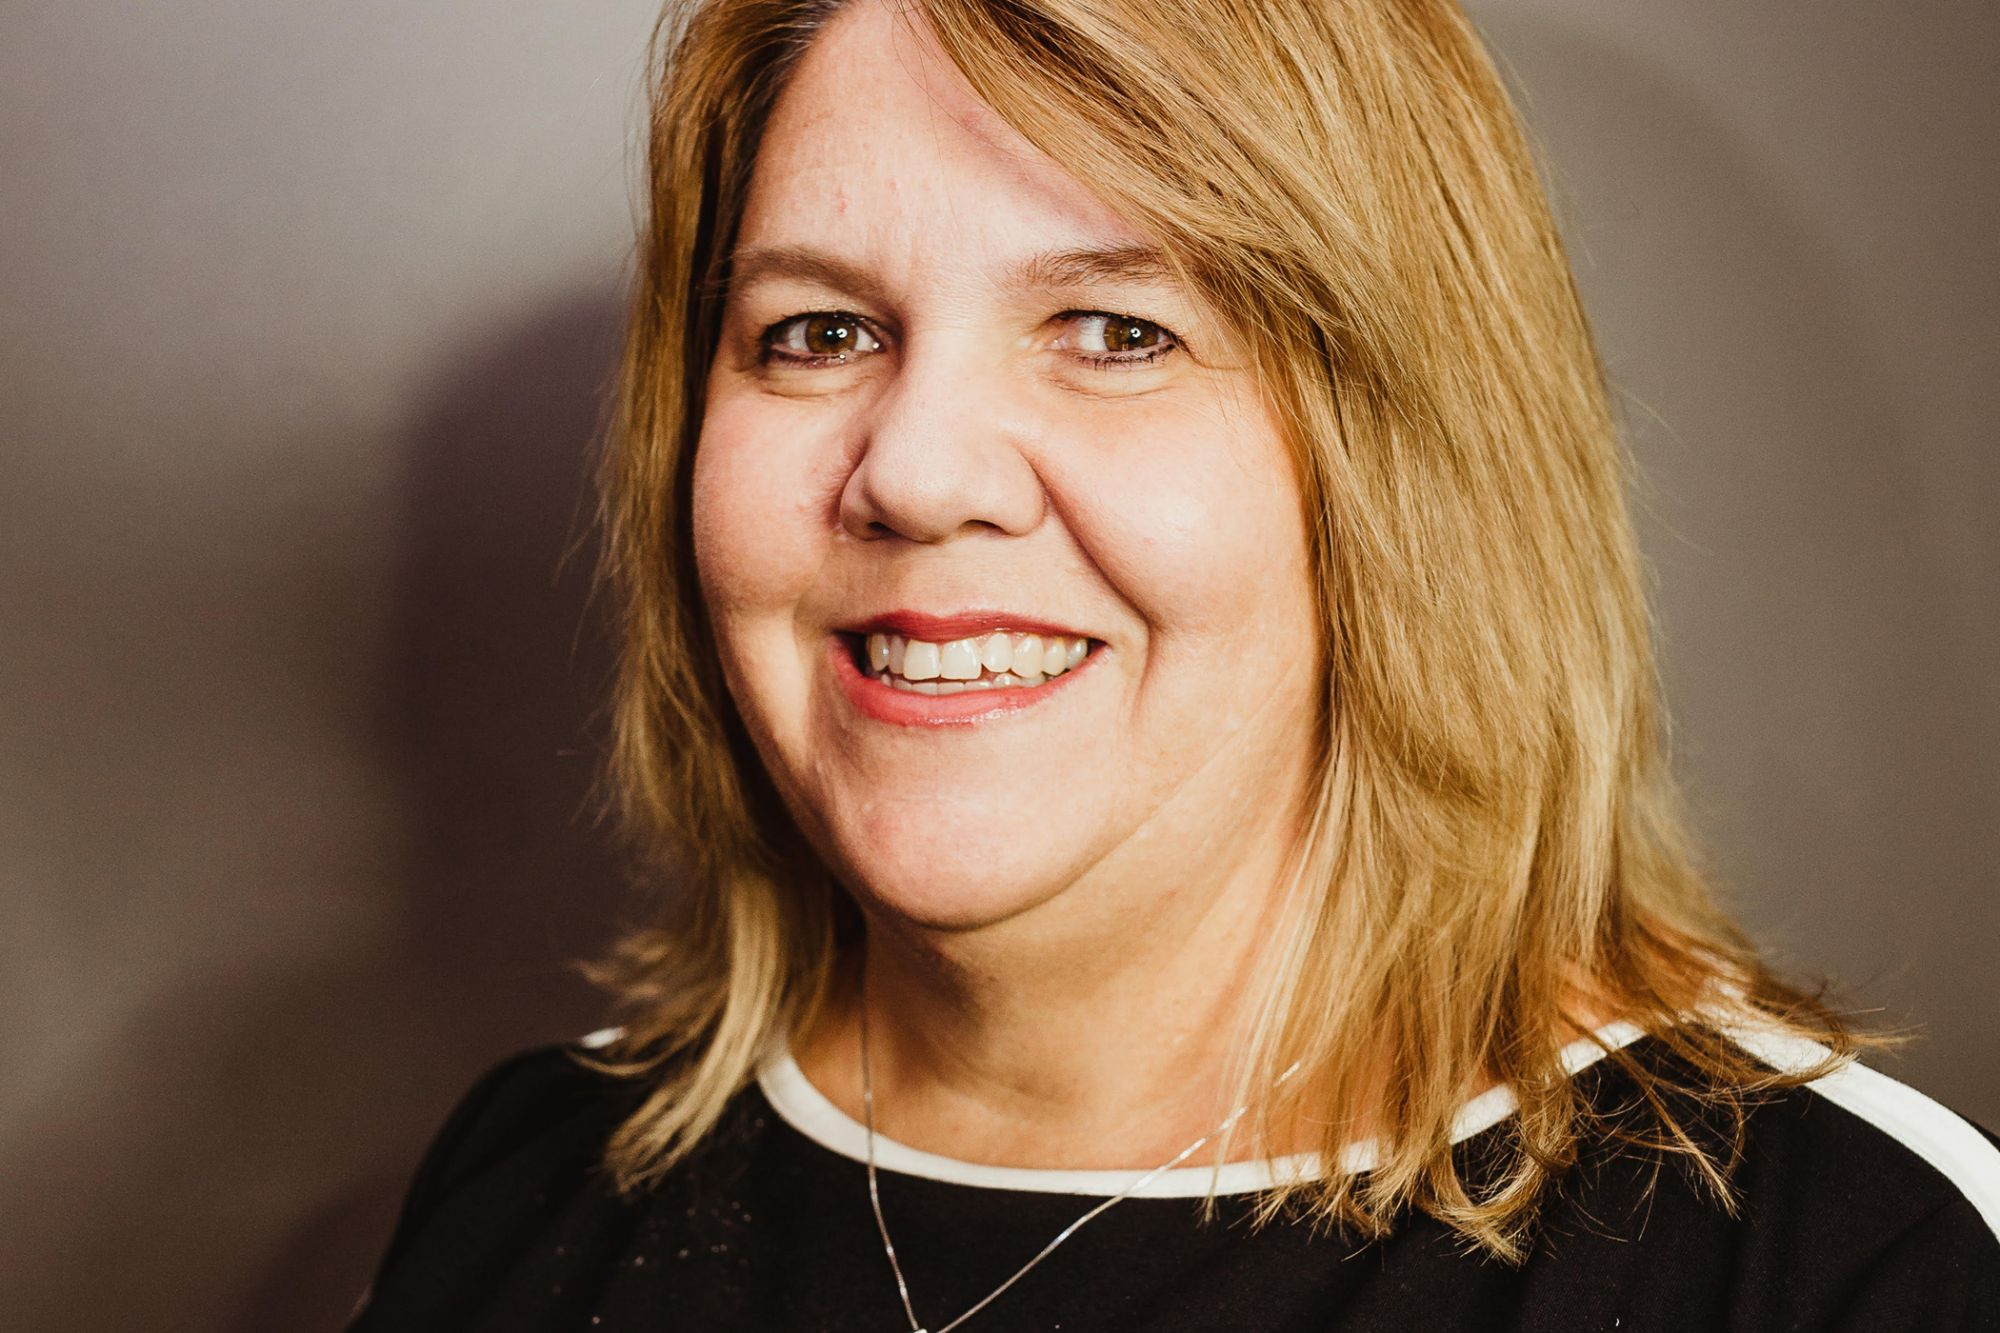 How This HR Technology Executive and Champion for Disadvantaged Teens Through Her Disruptive Actions